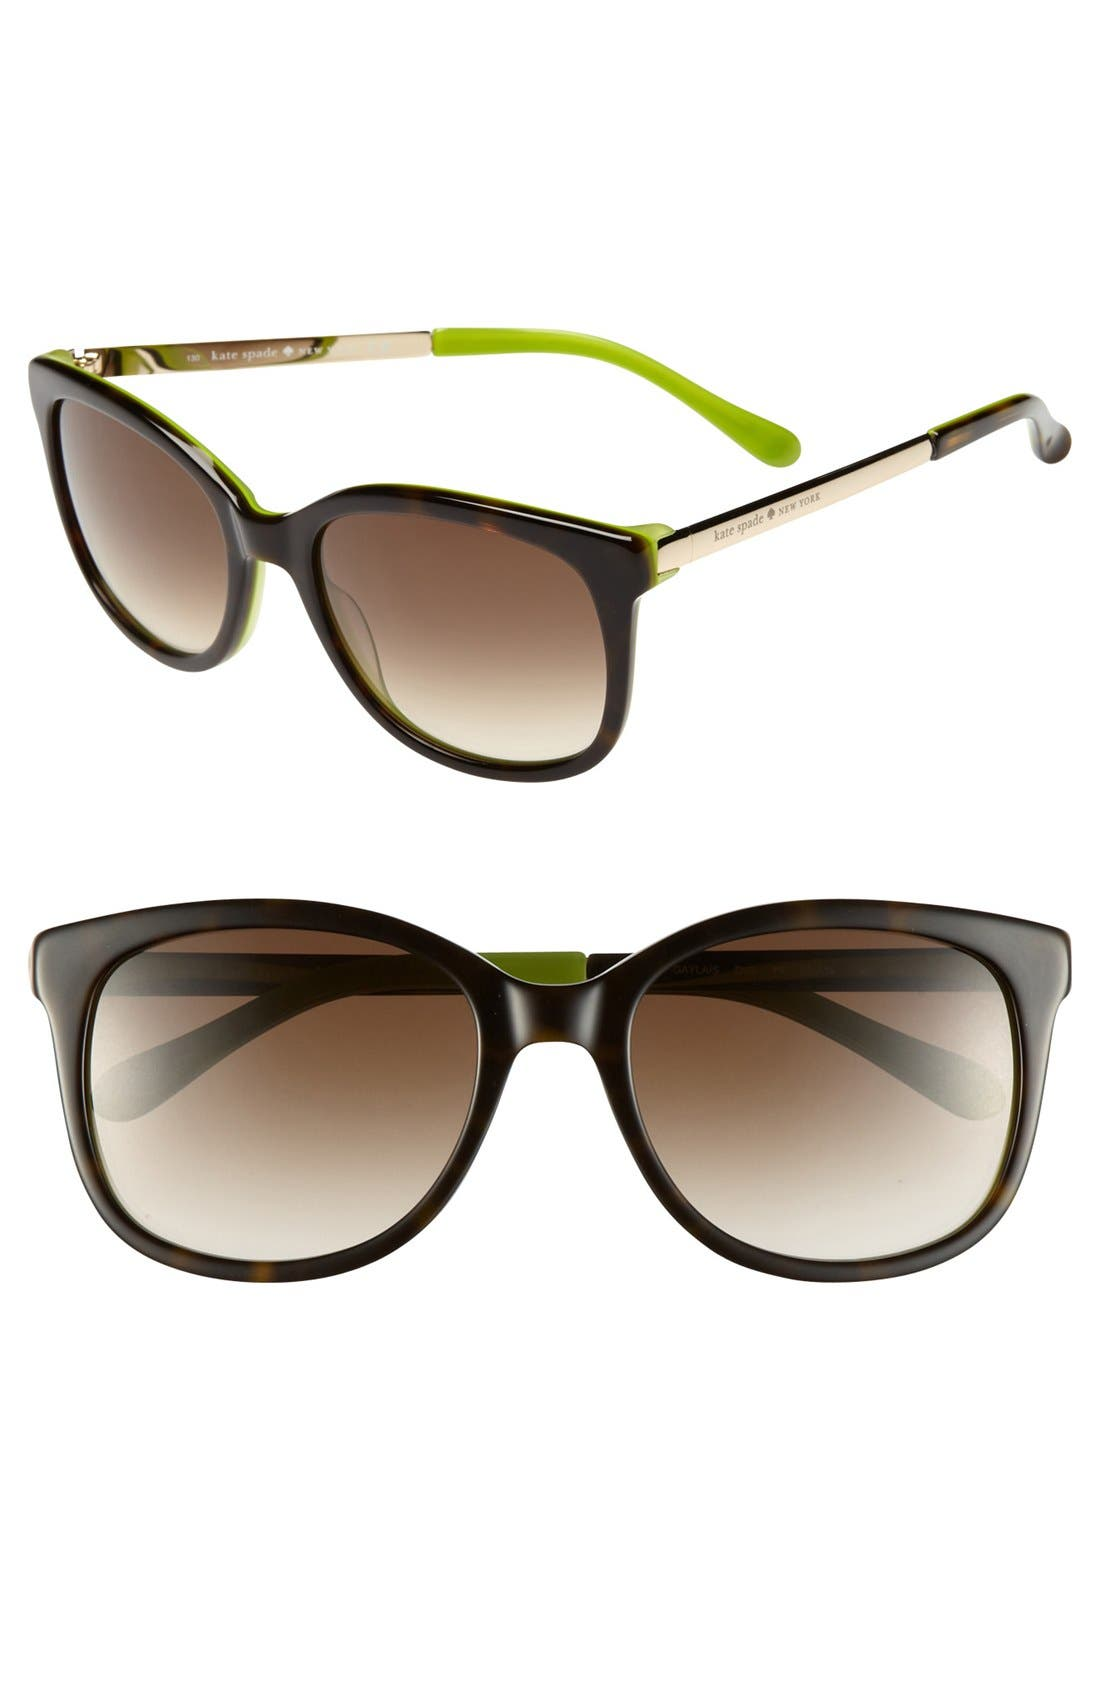 Alternate Image 1 Selected - kate spade new york 'gayla' 52mm sunglasses